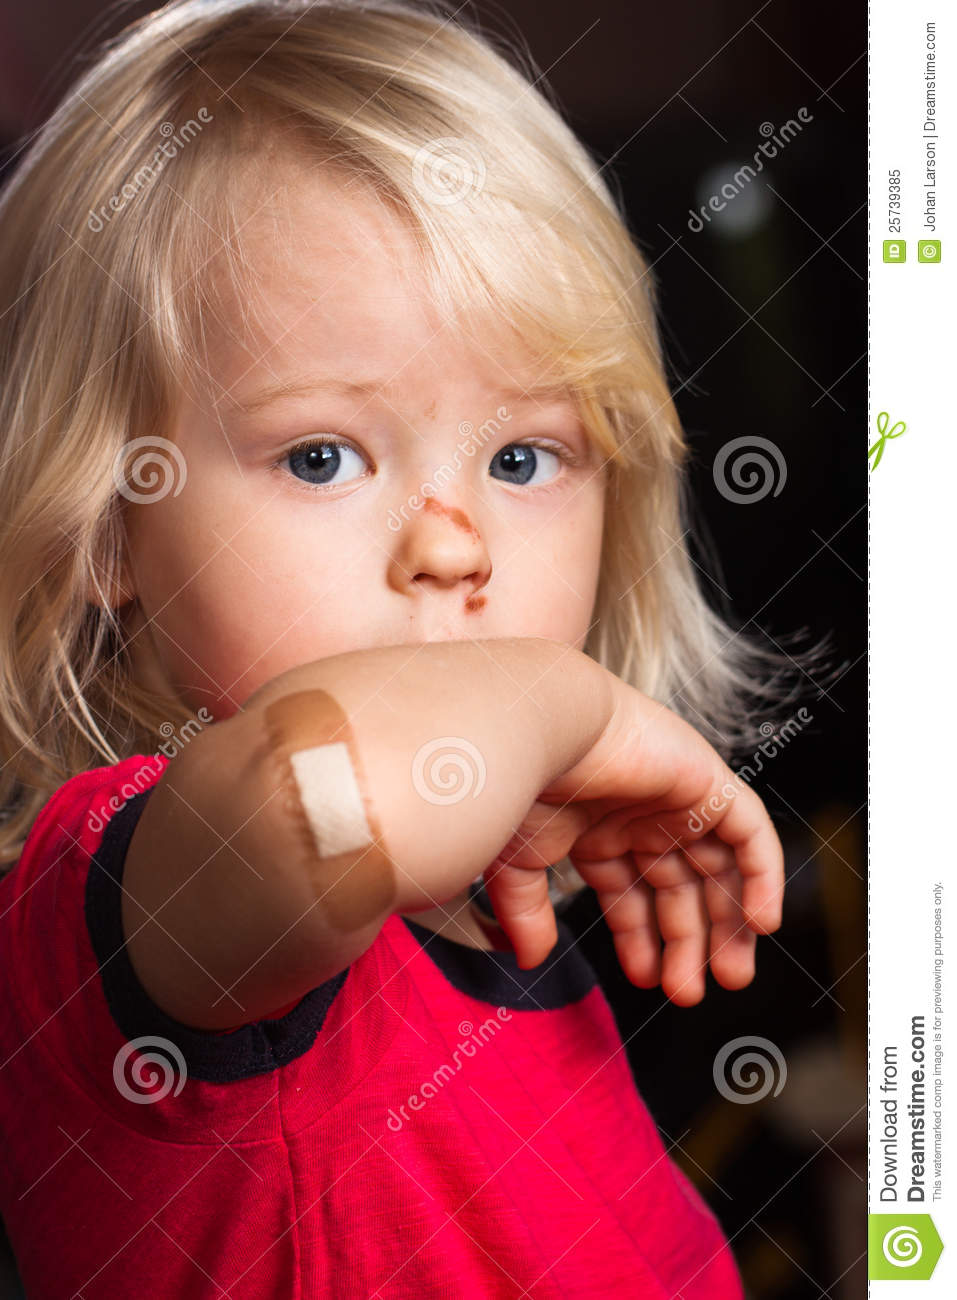 Injured Sad Boy With Band Aid On Elbow Royalty Free Stock